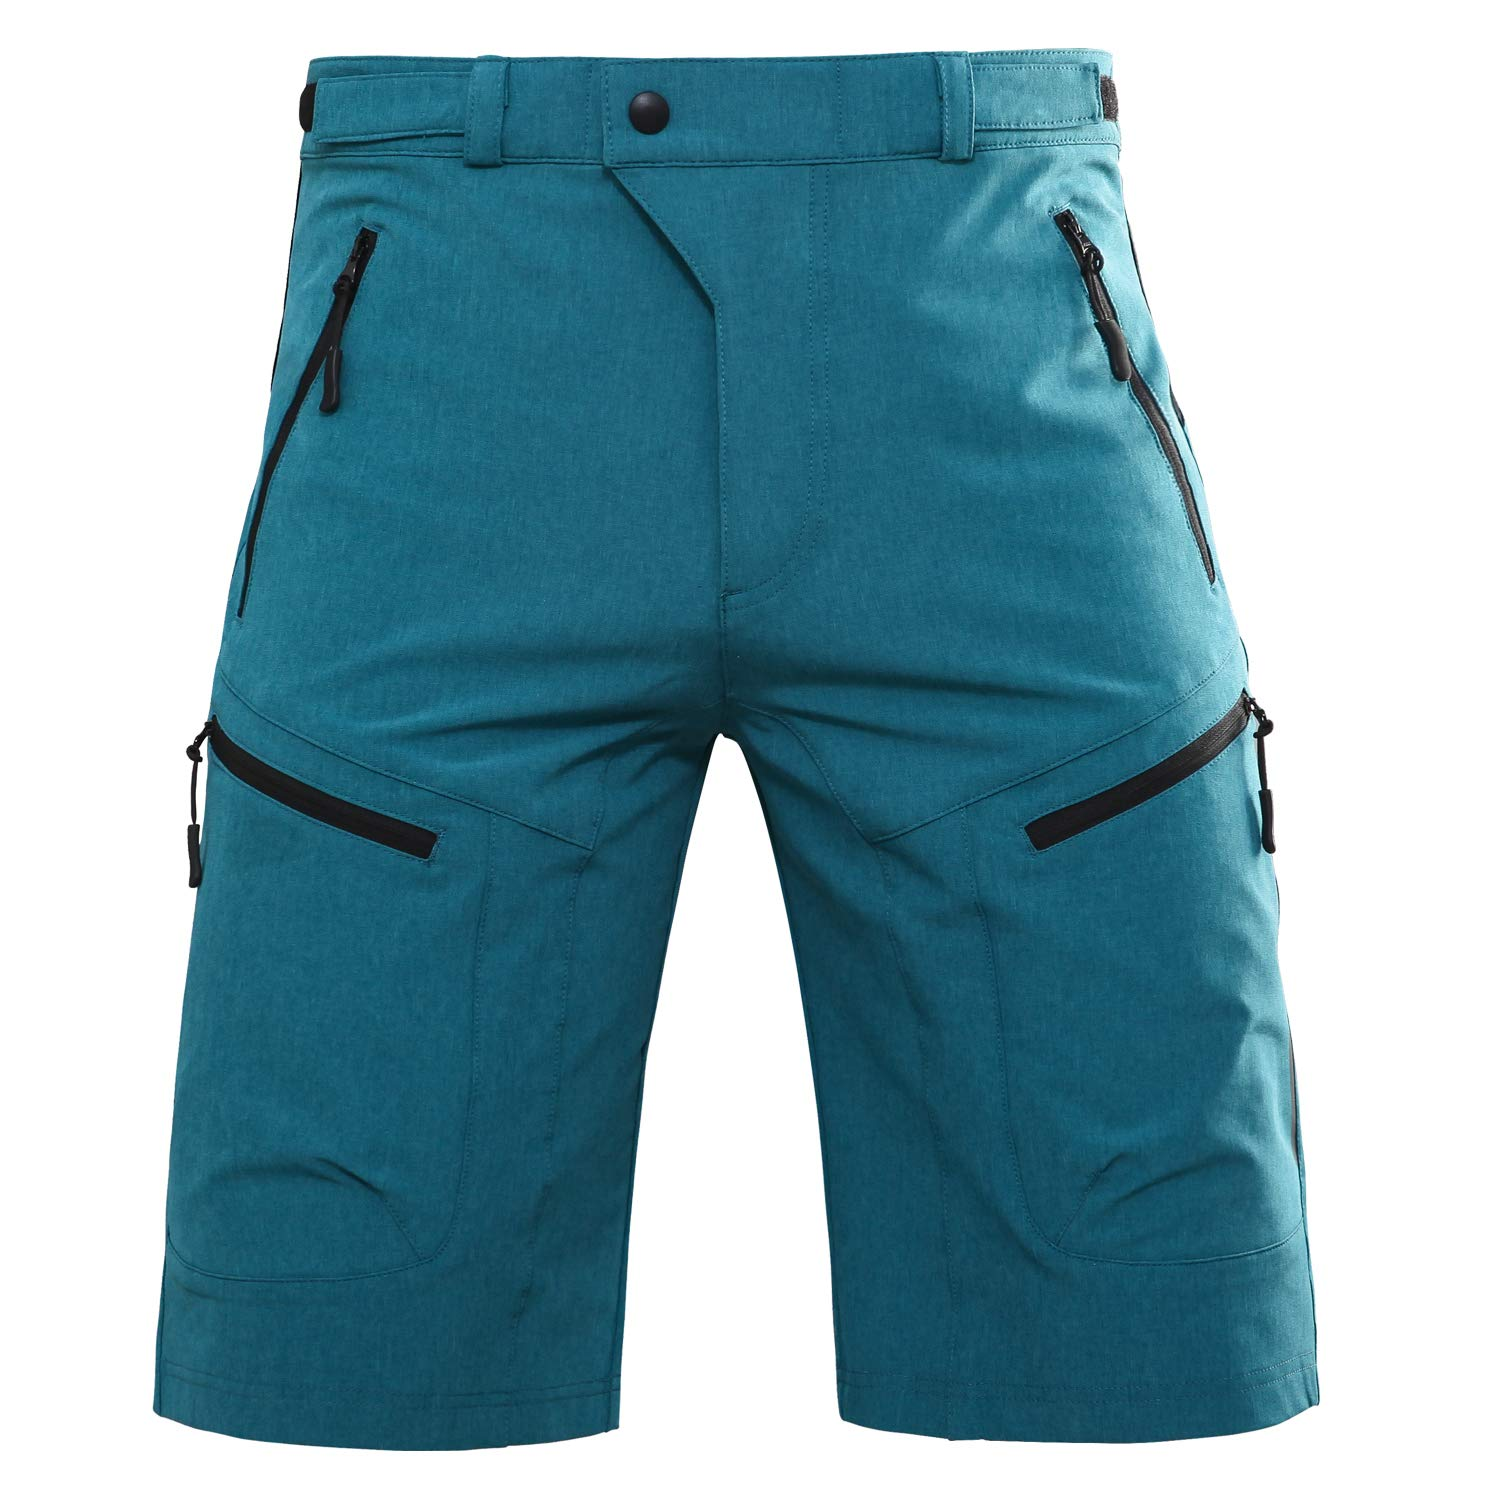 Hiauspor Men-Hiking-Climbing-Cargo-Shorts-Short (Blue 2XL (Waist: 36-38'' Hip: 40.5-42.5'')) by Hiauspor